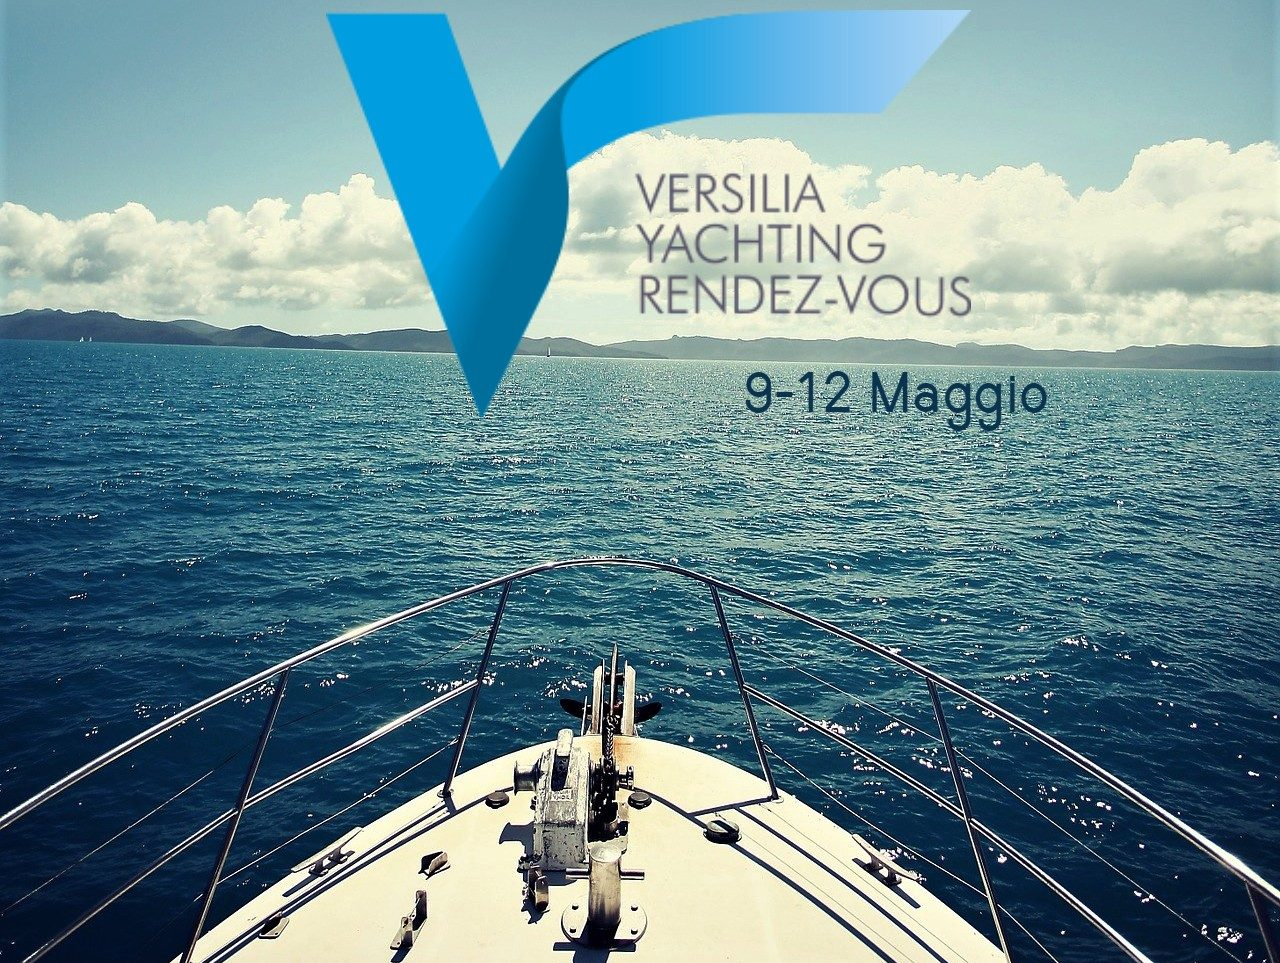 Vires presente a Versilia Yachting Rendez-vous